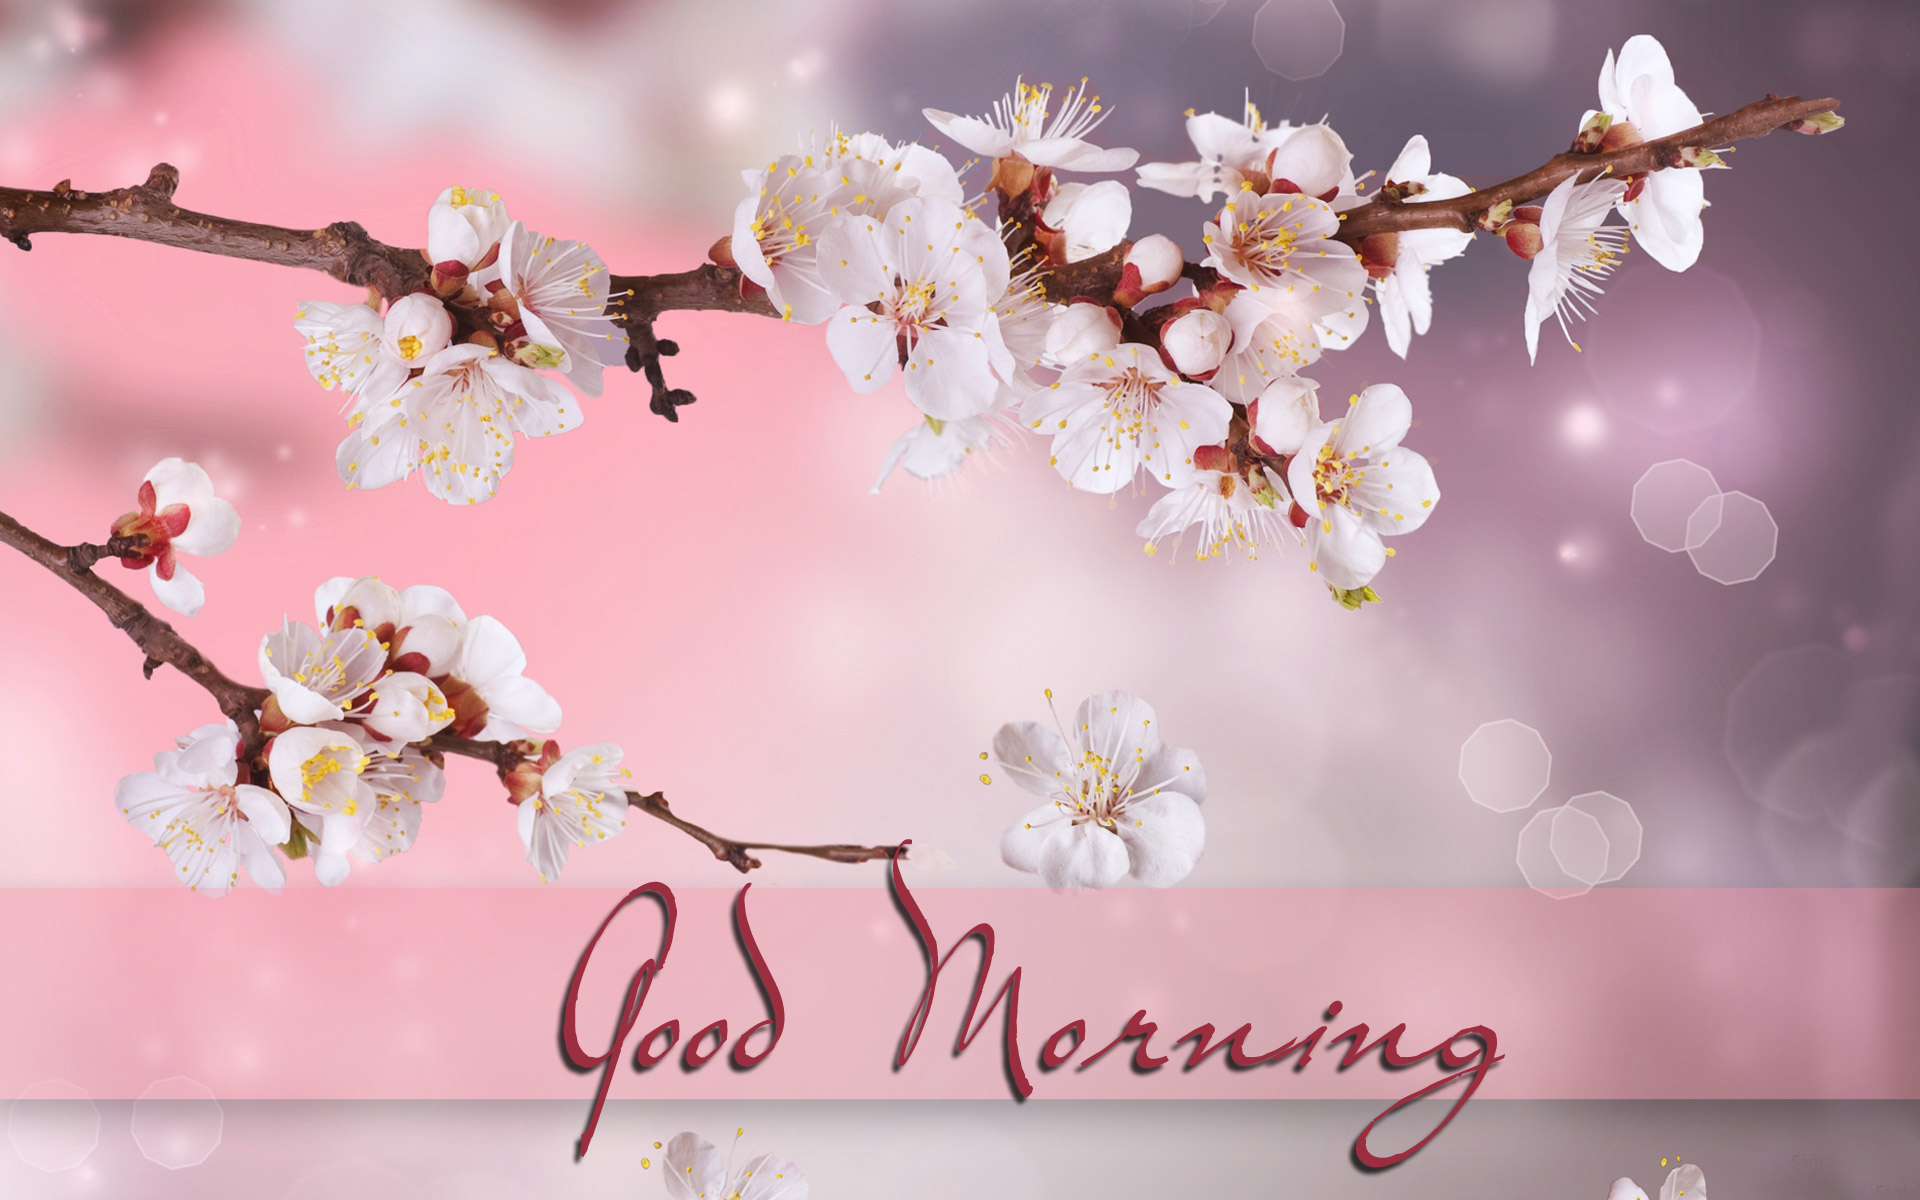 Good Morning Love Desktop Wallpaper : Good Morning wallpapers, Pictures, Images